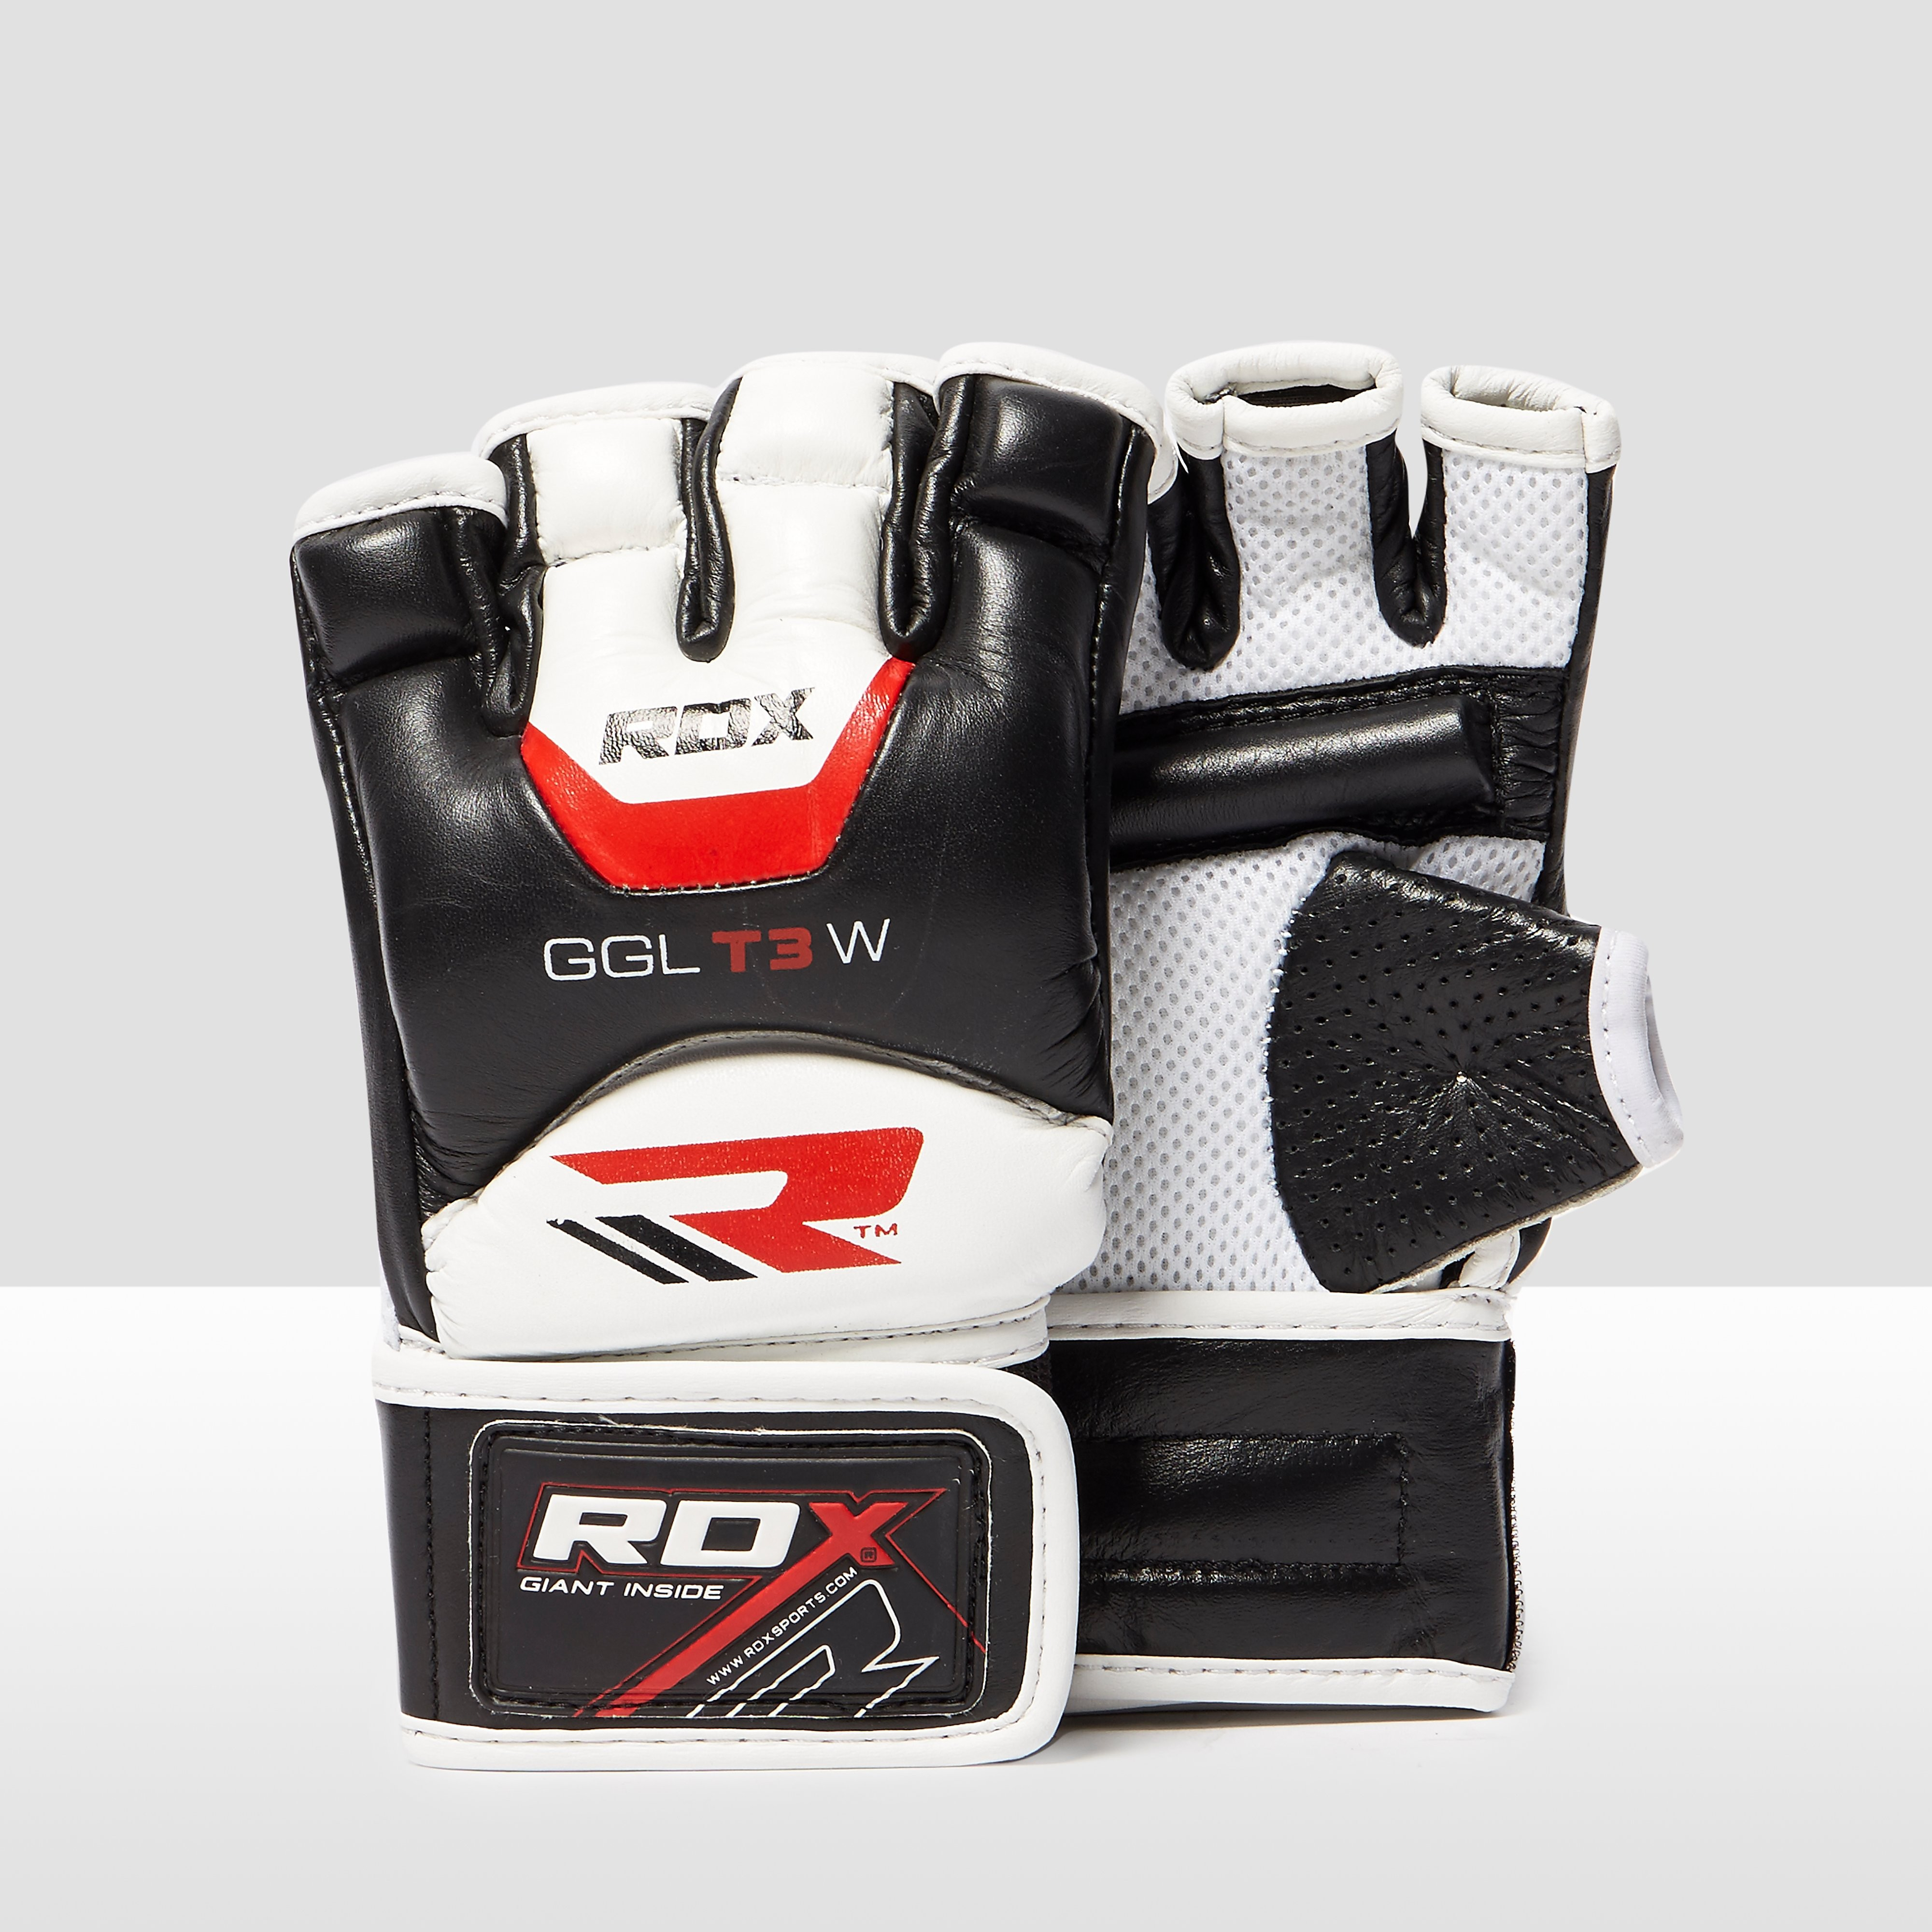 Rdx inc Leather Gel Men's Training Grappling Gloves